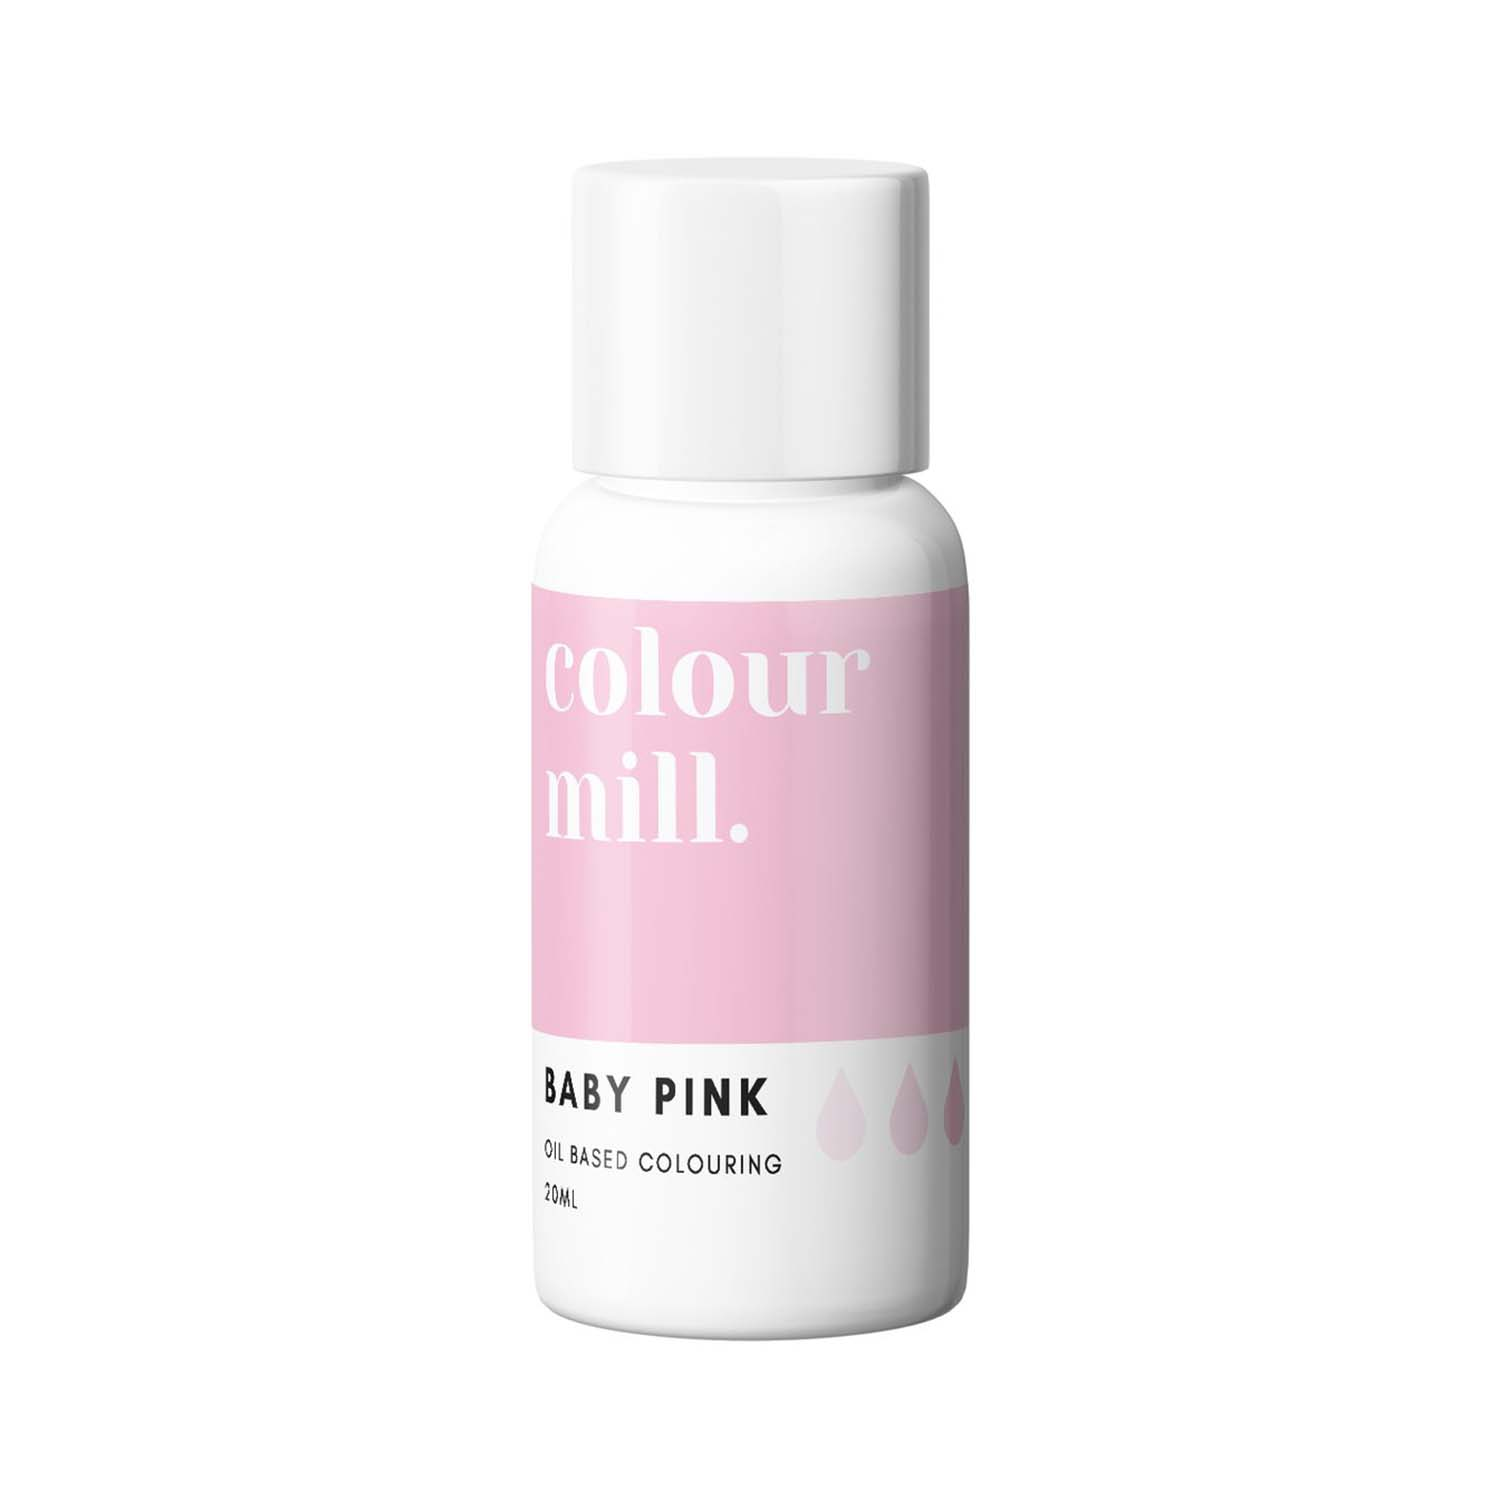 Baby Pink Colour Mill Oil Based Color